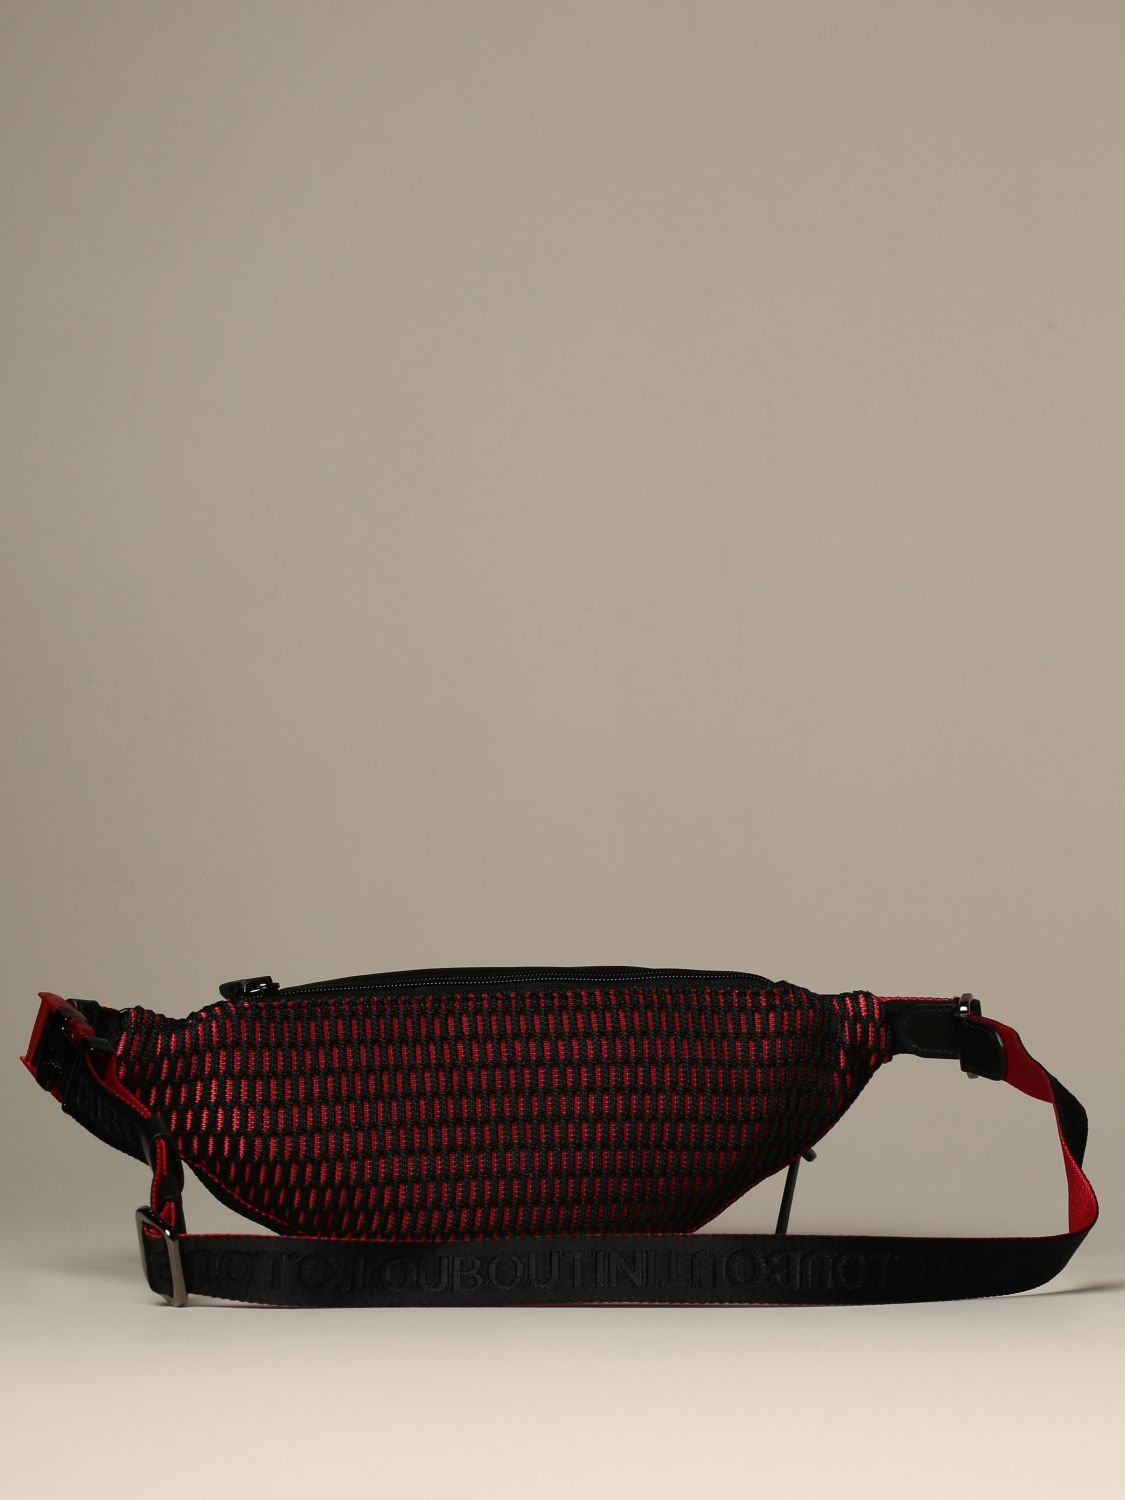 Belt bag Christian Louboutin: Parisnyc Christian Louboutin pouch in nylon with studs black 2